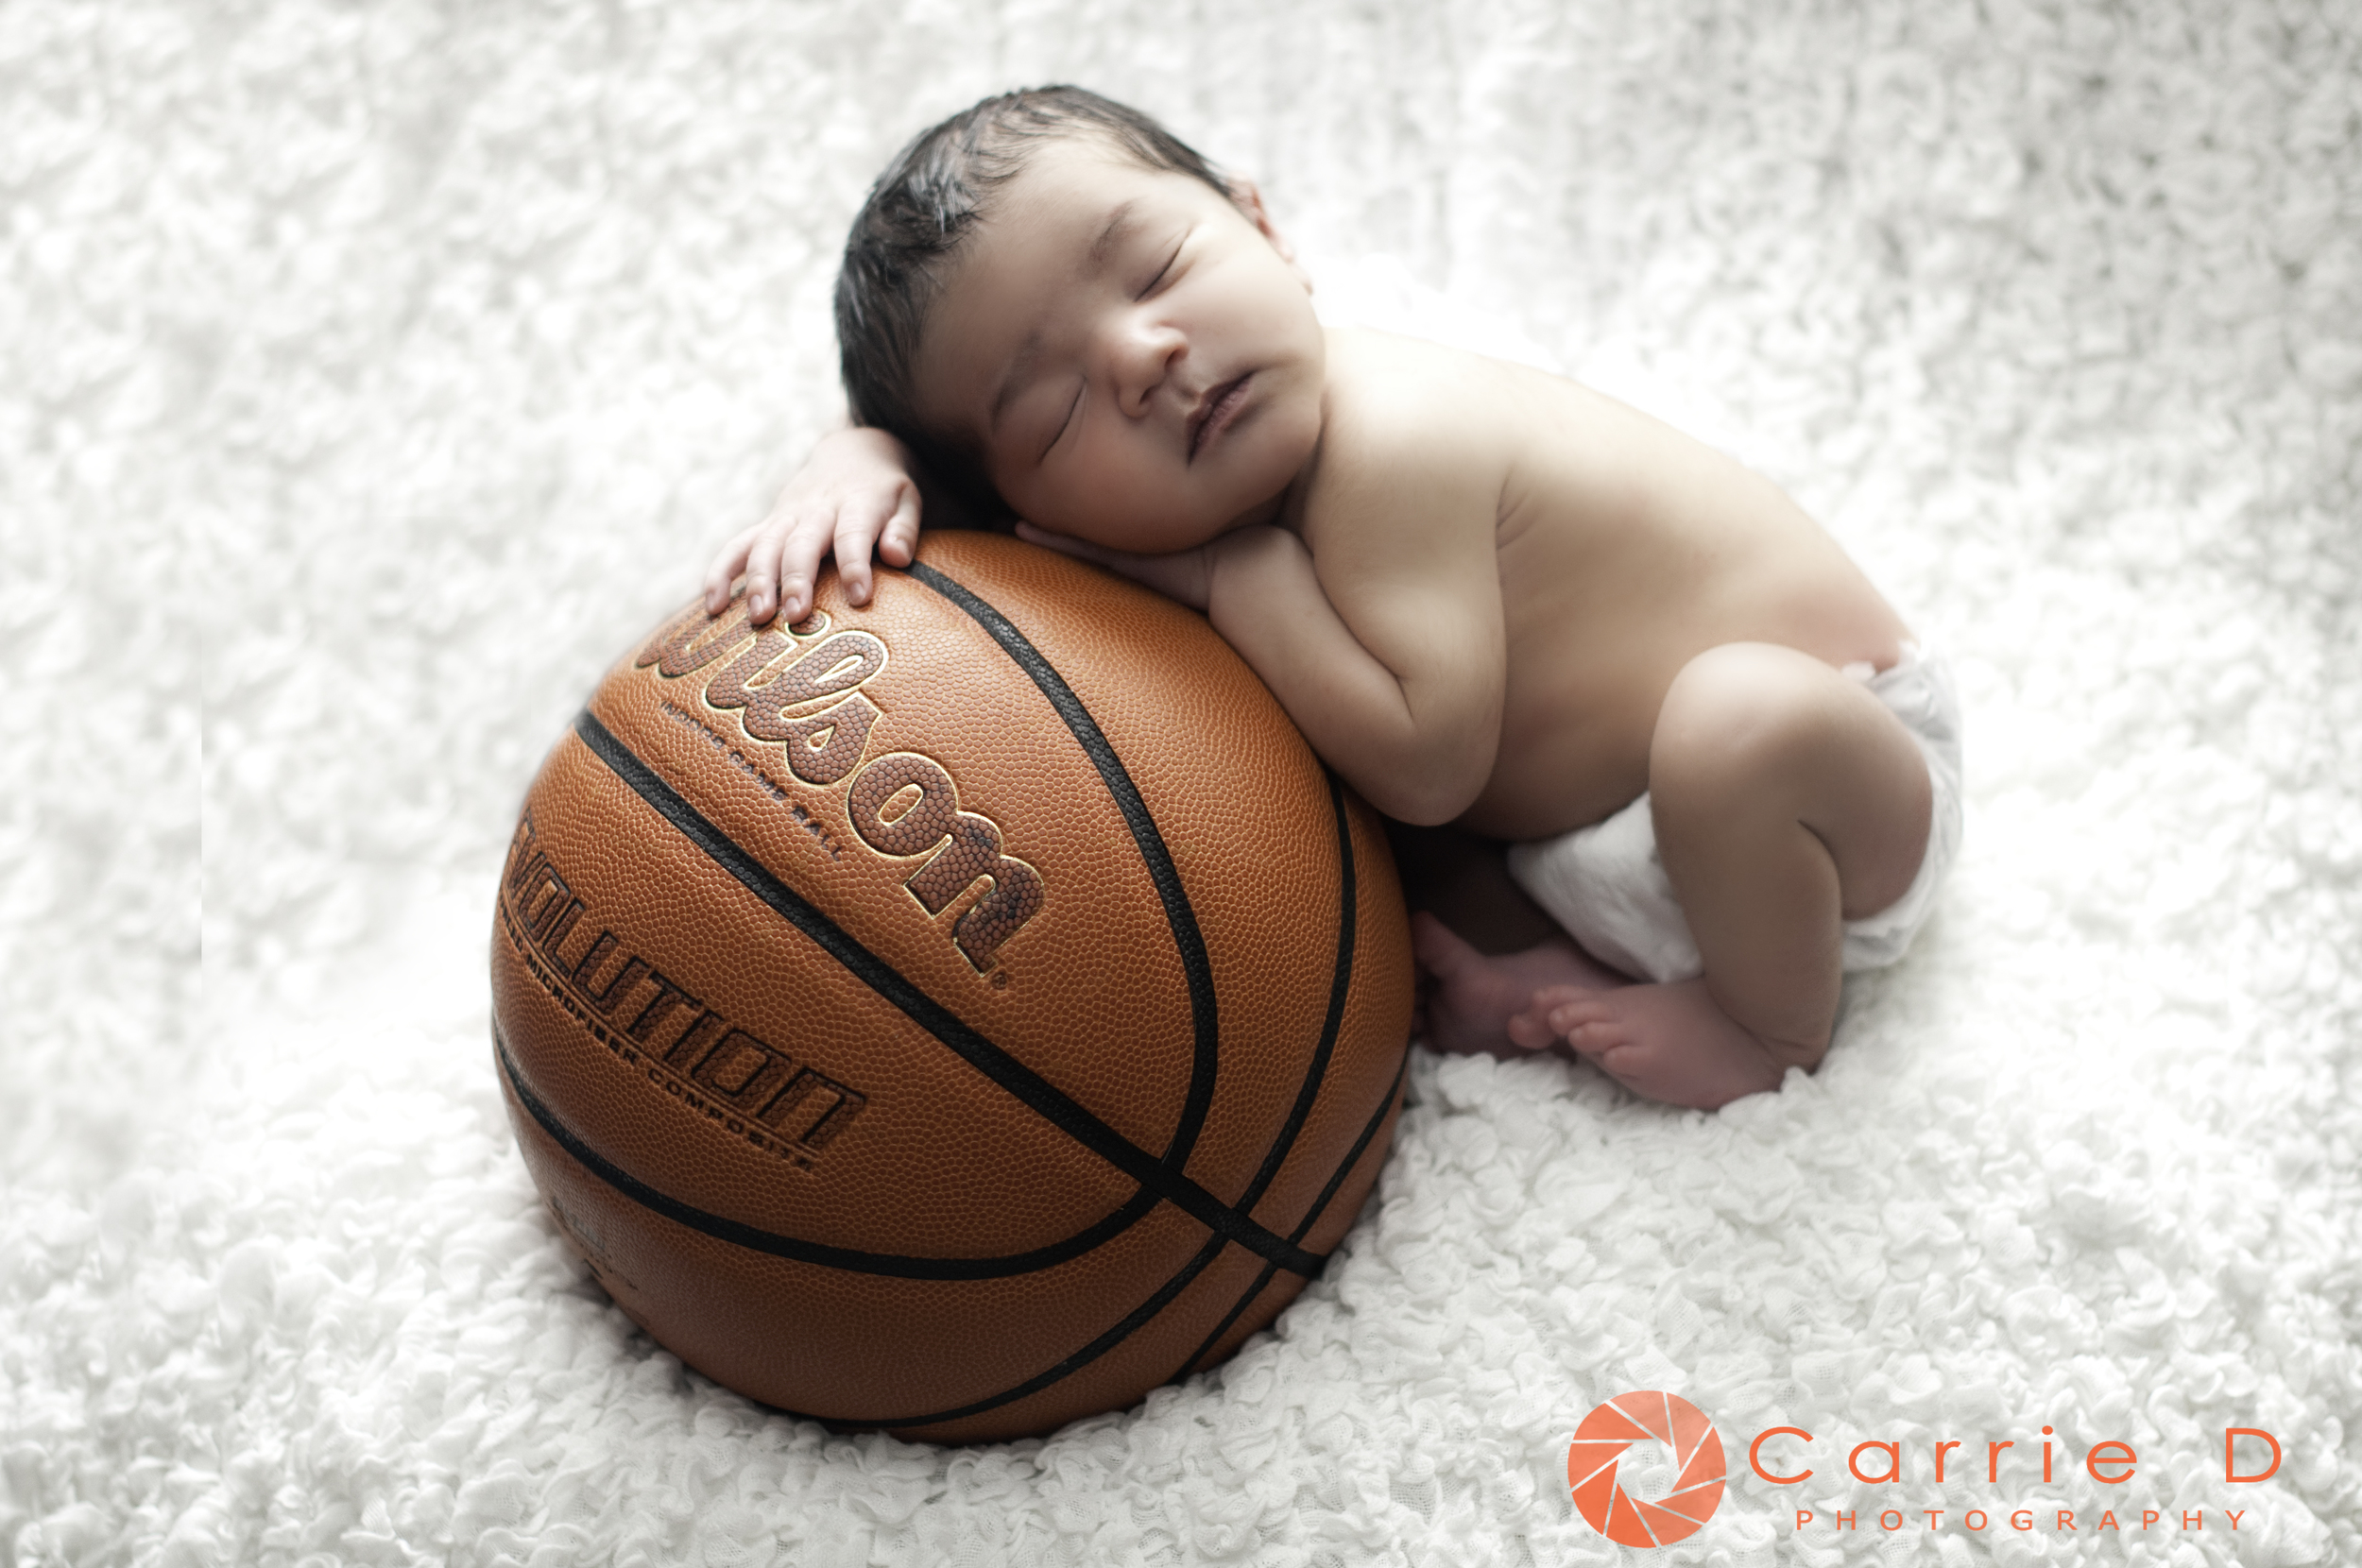 Alexandra Newborn Photographer - Alexandria Natural Light Photographer - Alexandria Natural Light Newborn Photographer - Natural Light Newborn Photographer - Newborn with Basketball - Newborn with bowtie